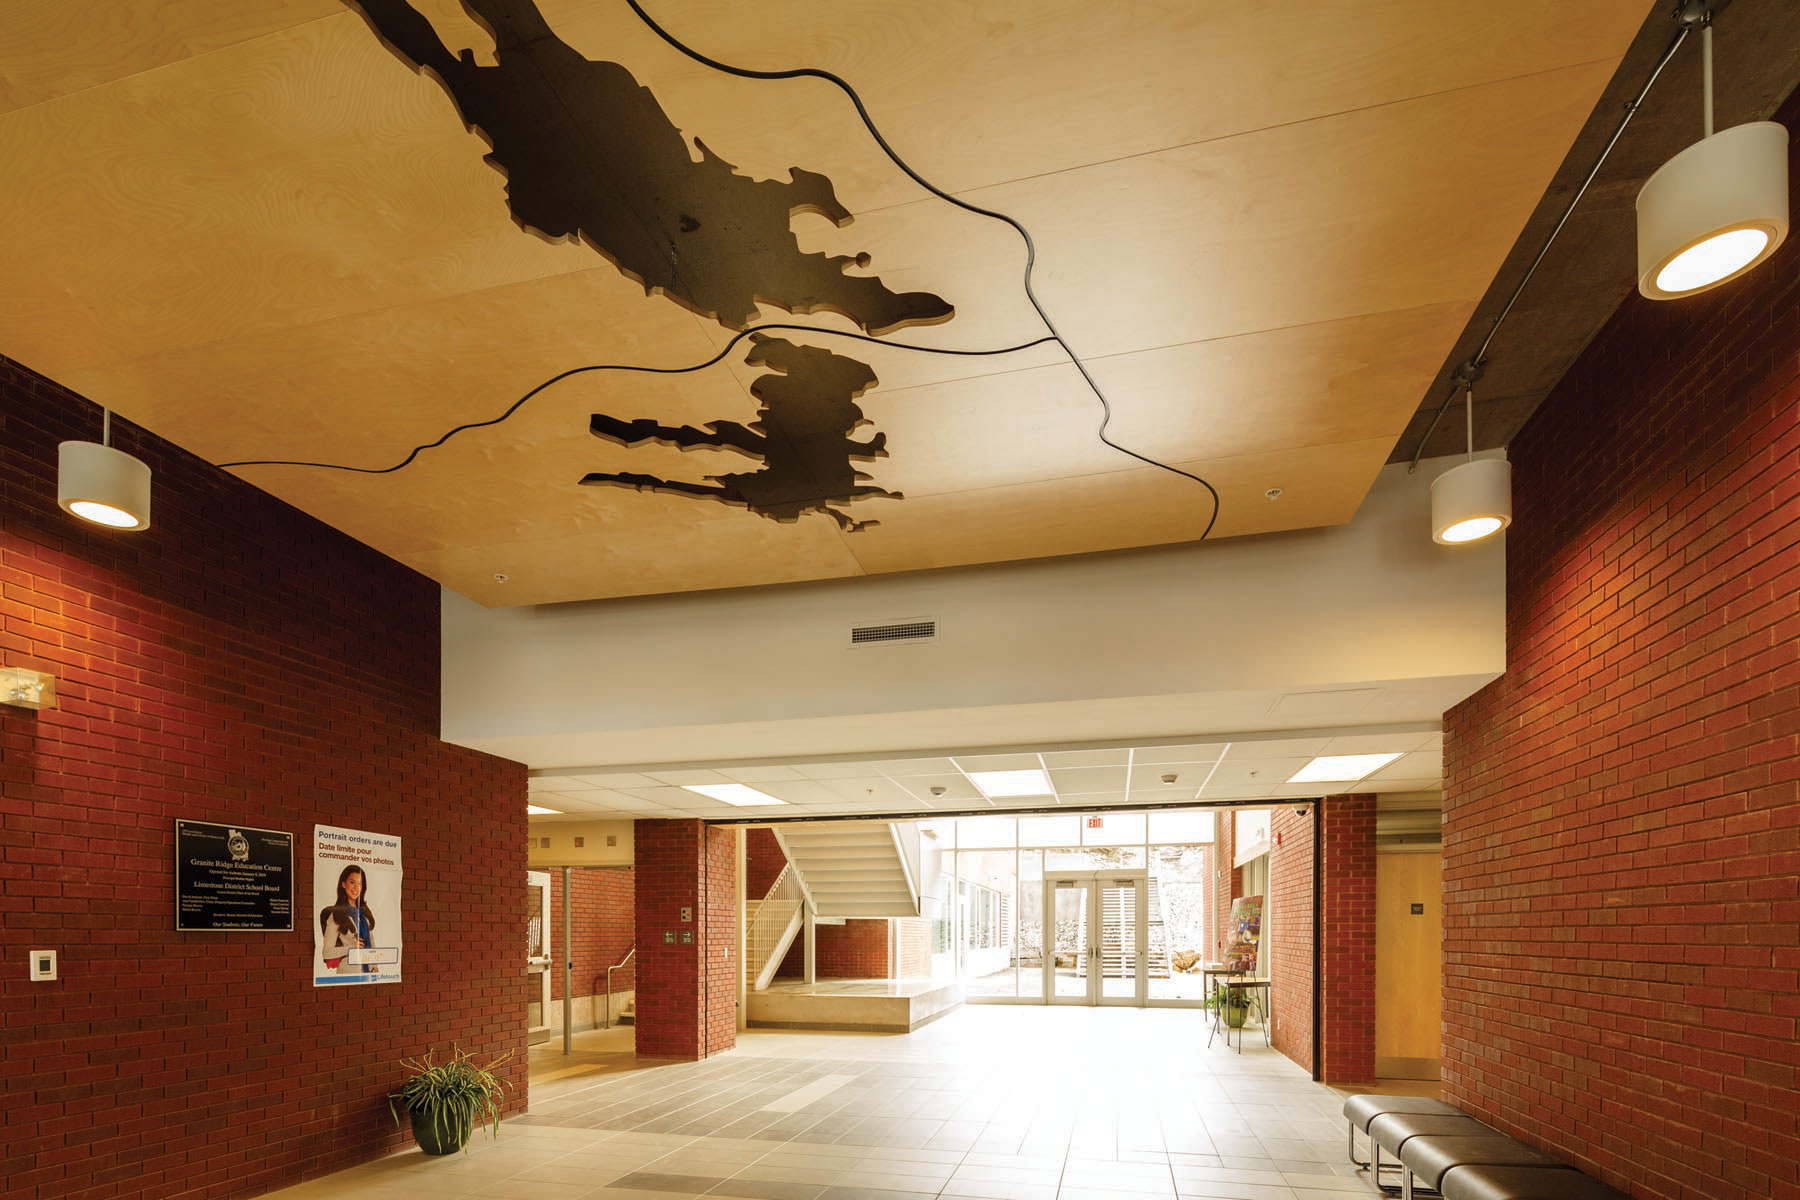 Main entrance lobby with exposed red brick walls and wooden lakes cut out feature ceiling